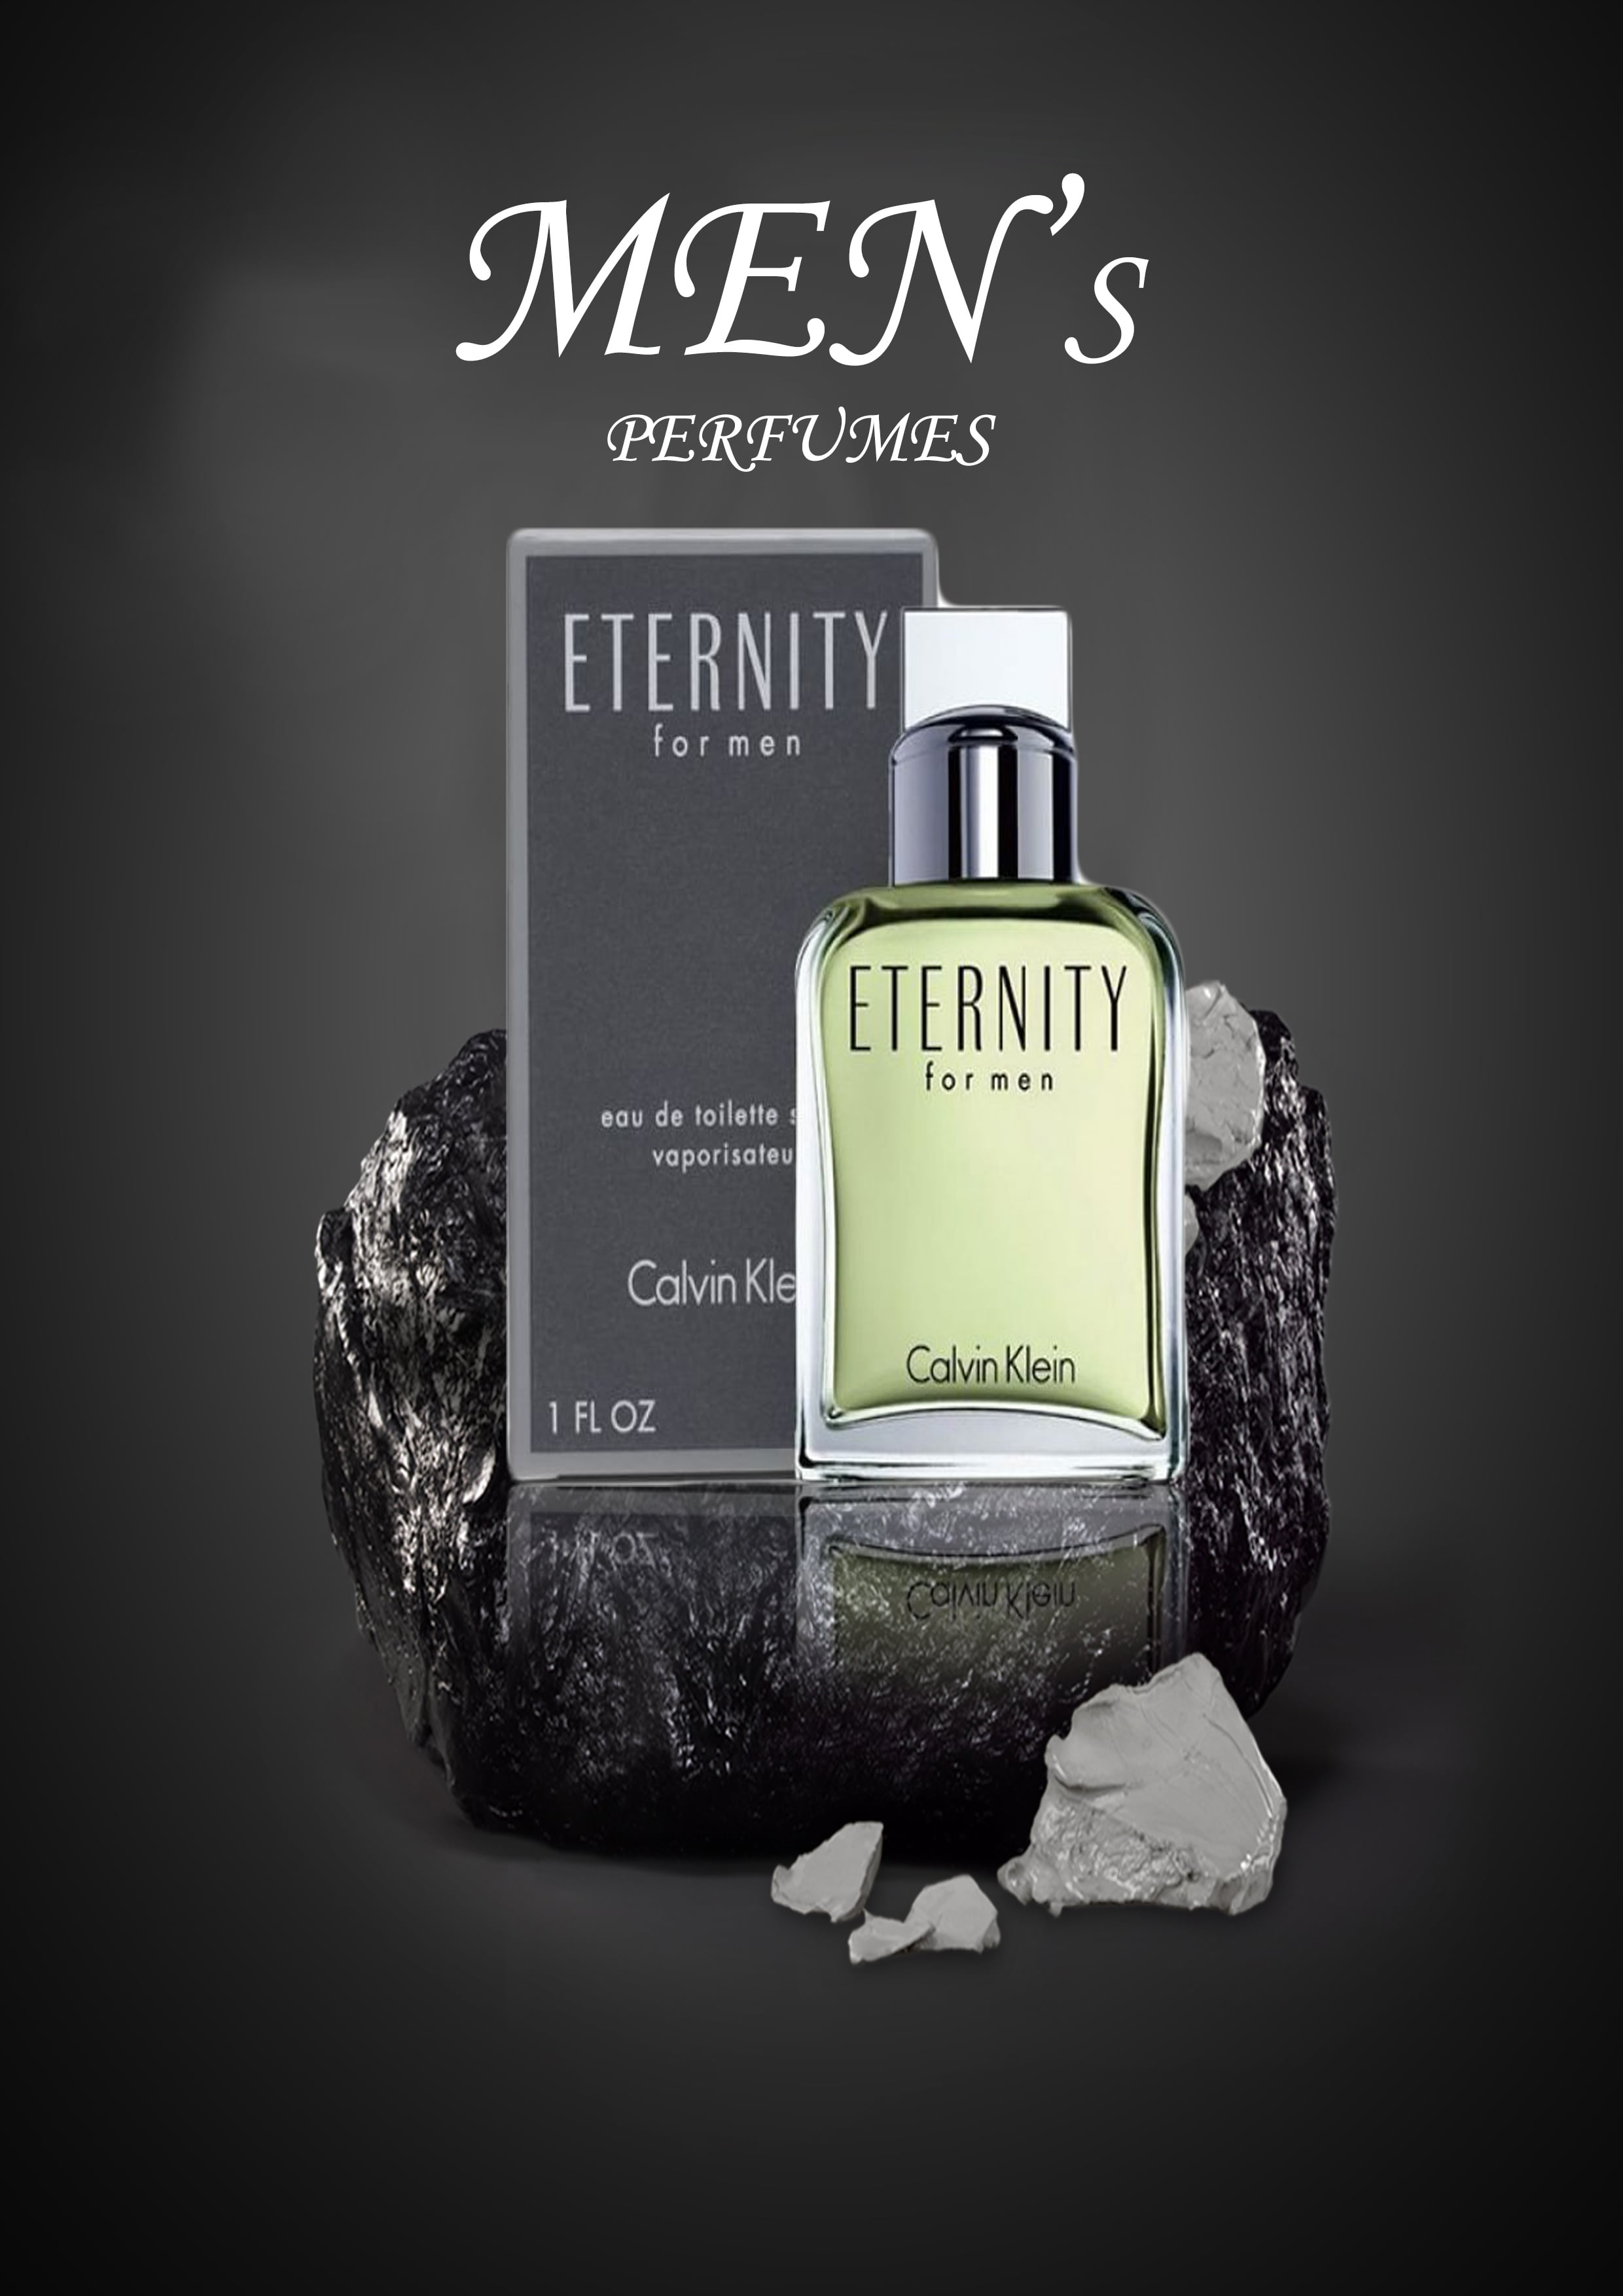 Perfumes | Men's Section